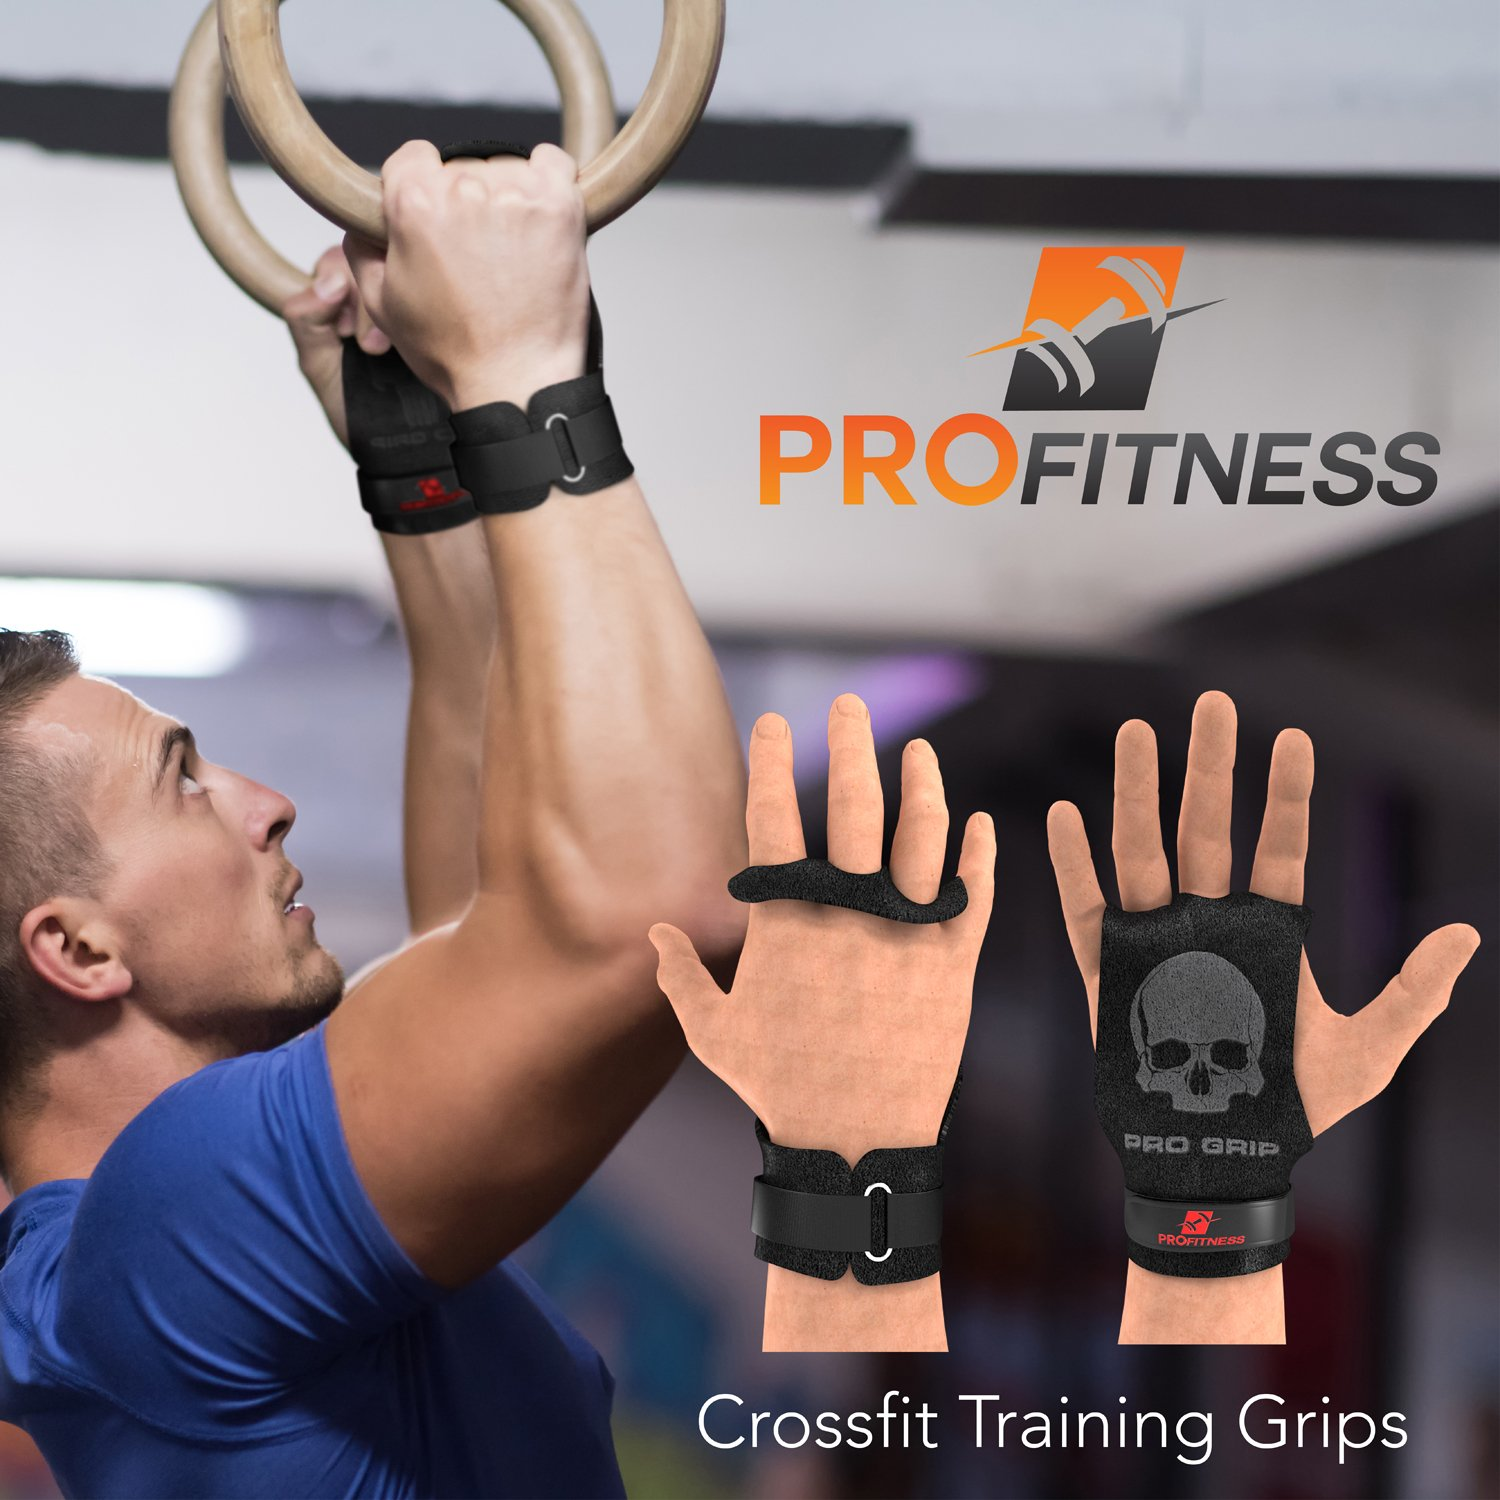 ProFitness Leather Cross Training Grips High Grip Palm Protection from Rips /& Tears with Wrist Support for Pull Ups Kettlebells Non Slip